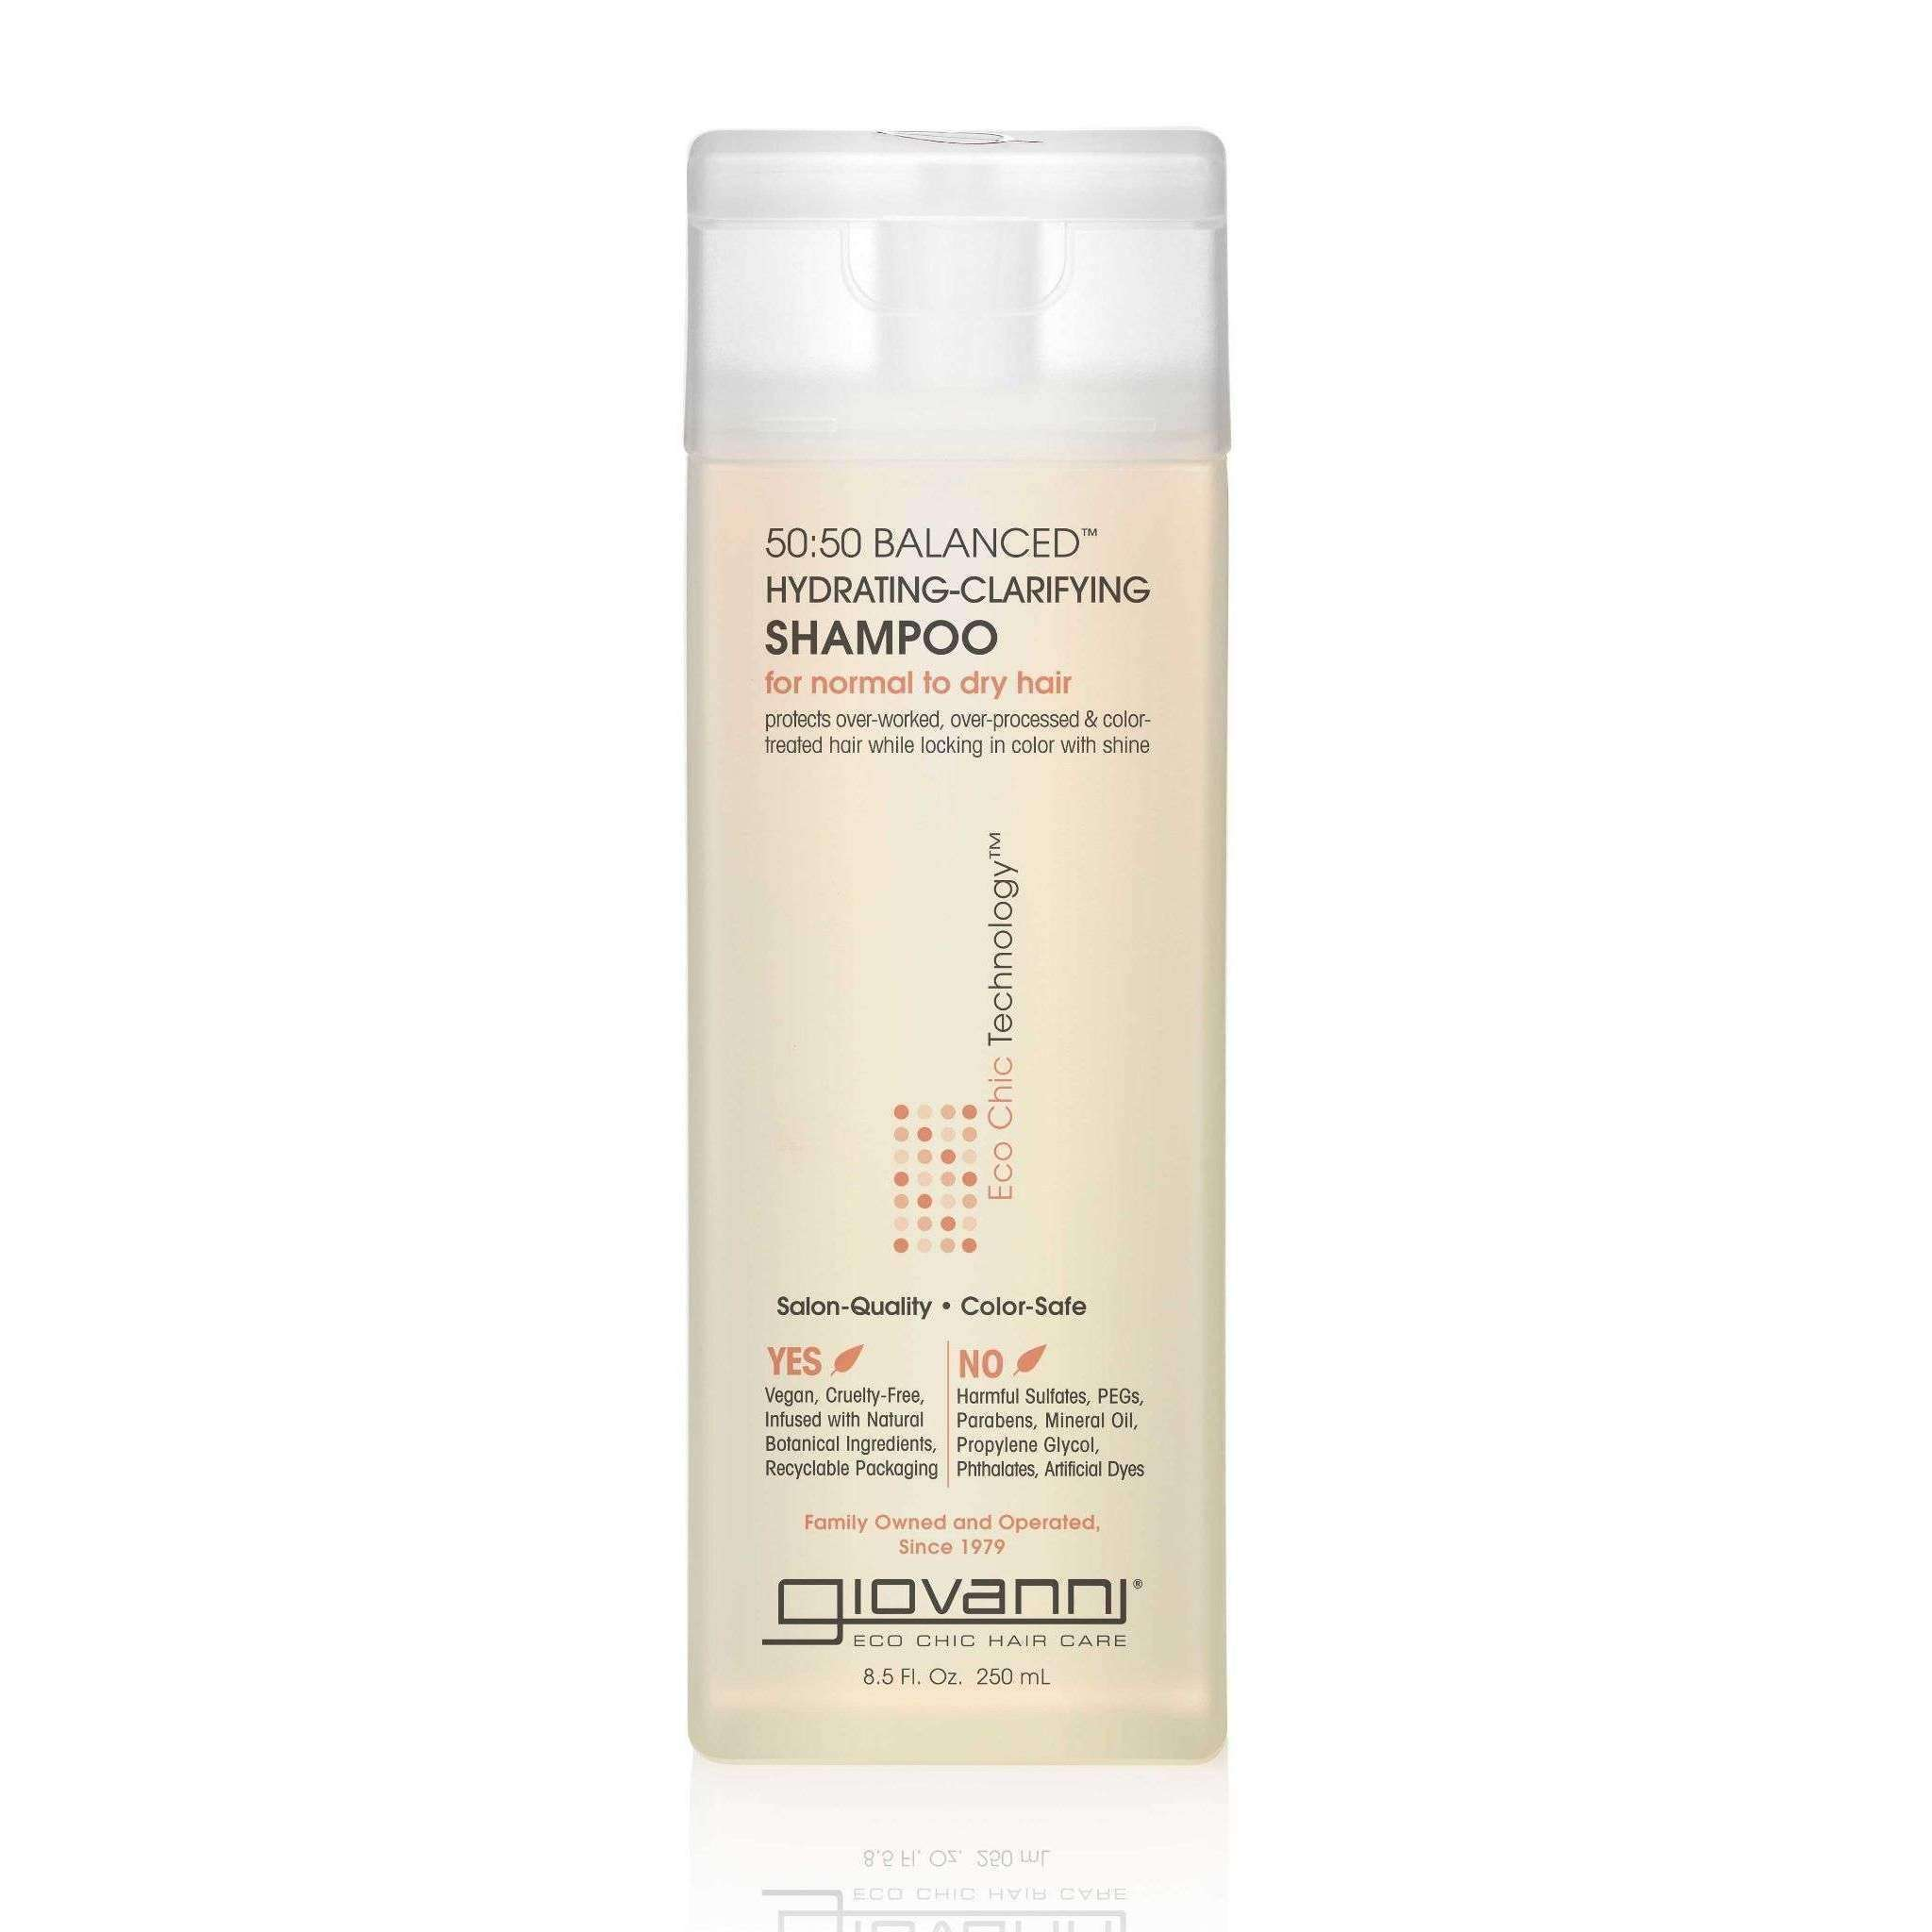 Giovanni 50/50 Balanced Hydrating-Clarifying Shampoo